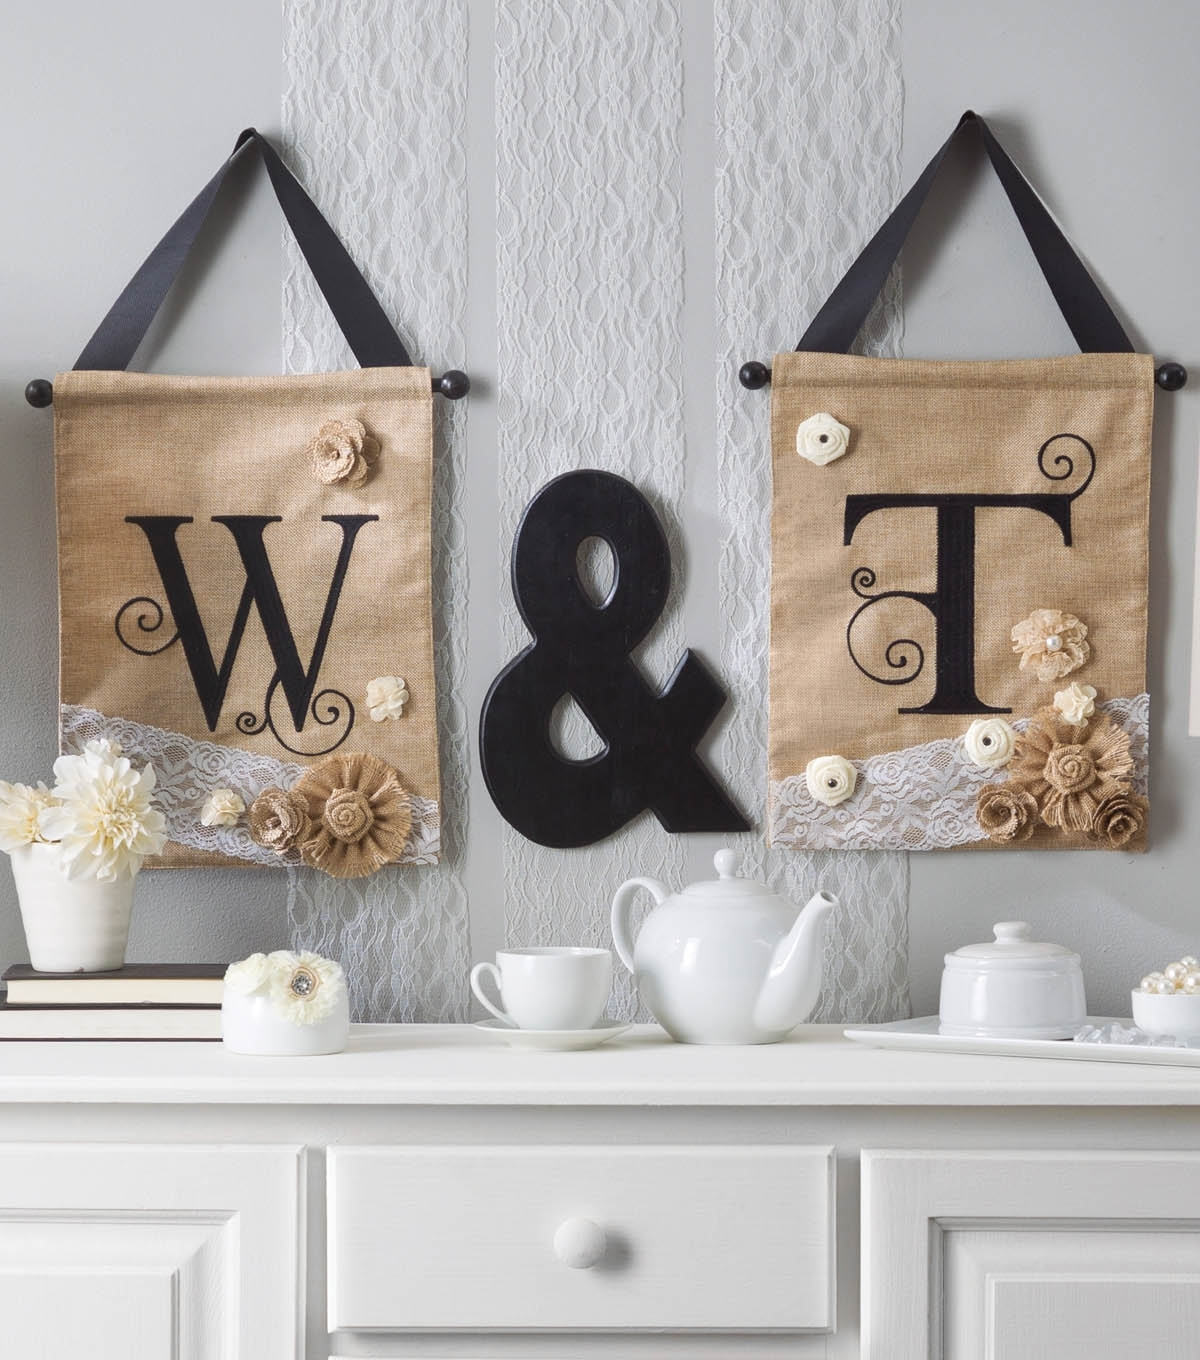 Embellished Initial Letters On Burlap Wall Hangings | Joann Pertaining To Most Recent Joann Fabric Wall Art (Gallery 3 of 15)